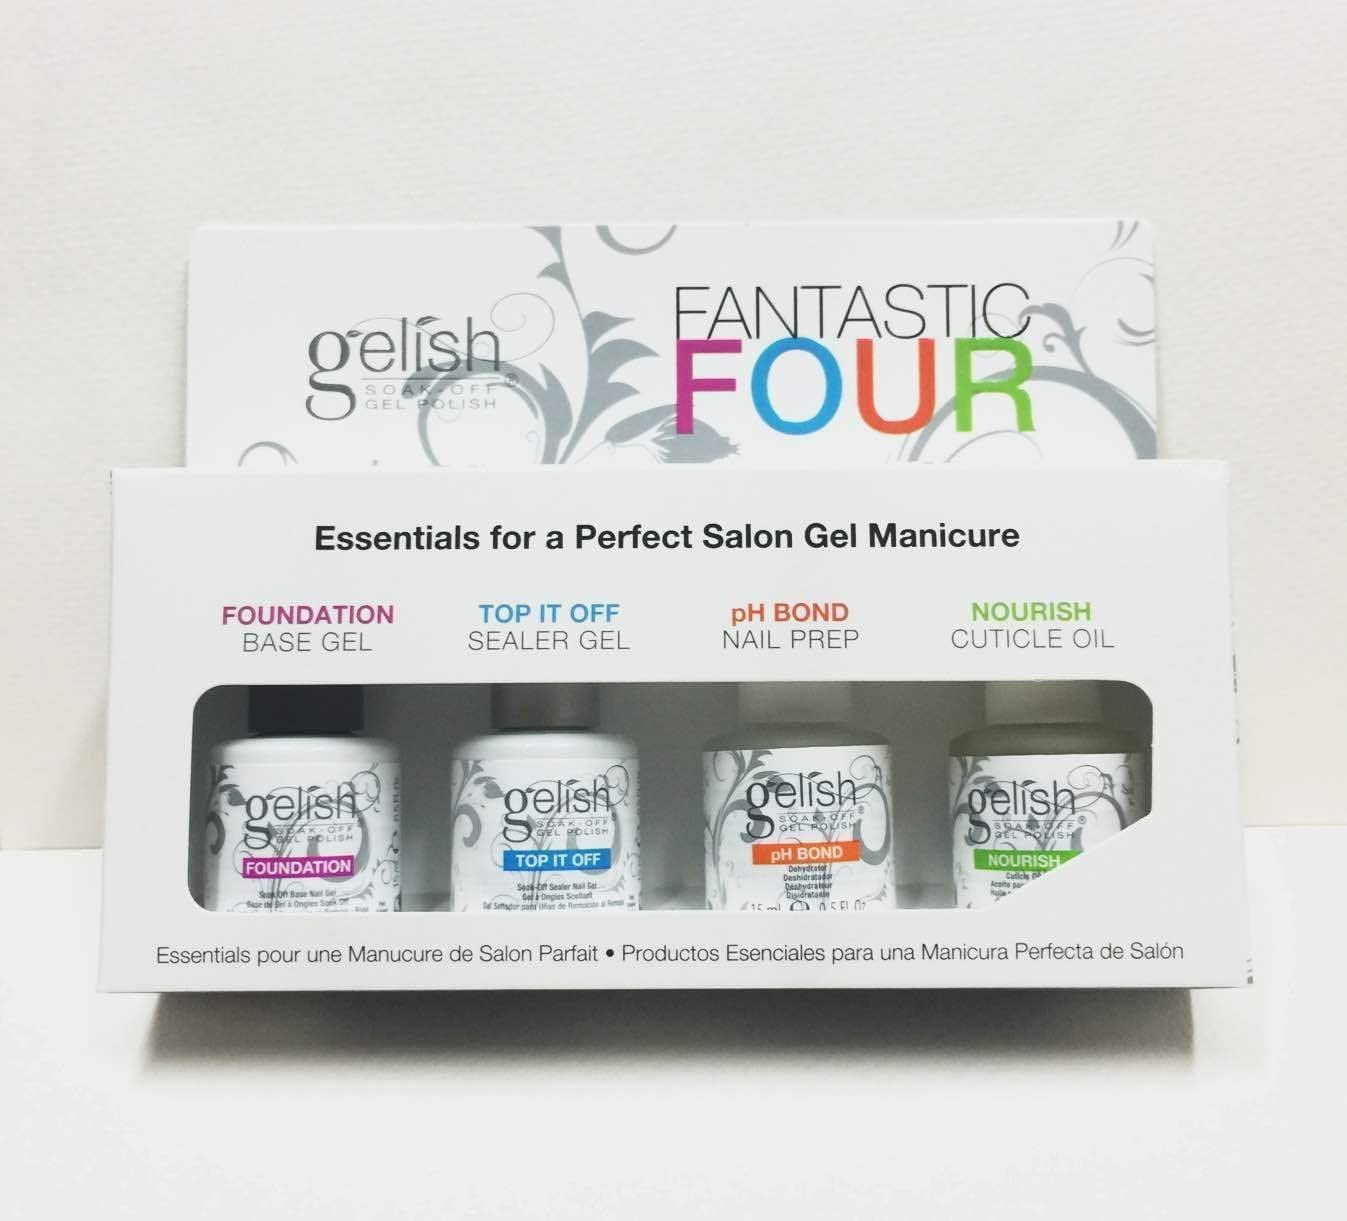 Kit de manicura Fantastic Four de Harmony Gelish con 4 botes de 15 ml de base/sellador/deshidratador/nutriente